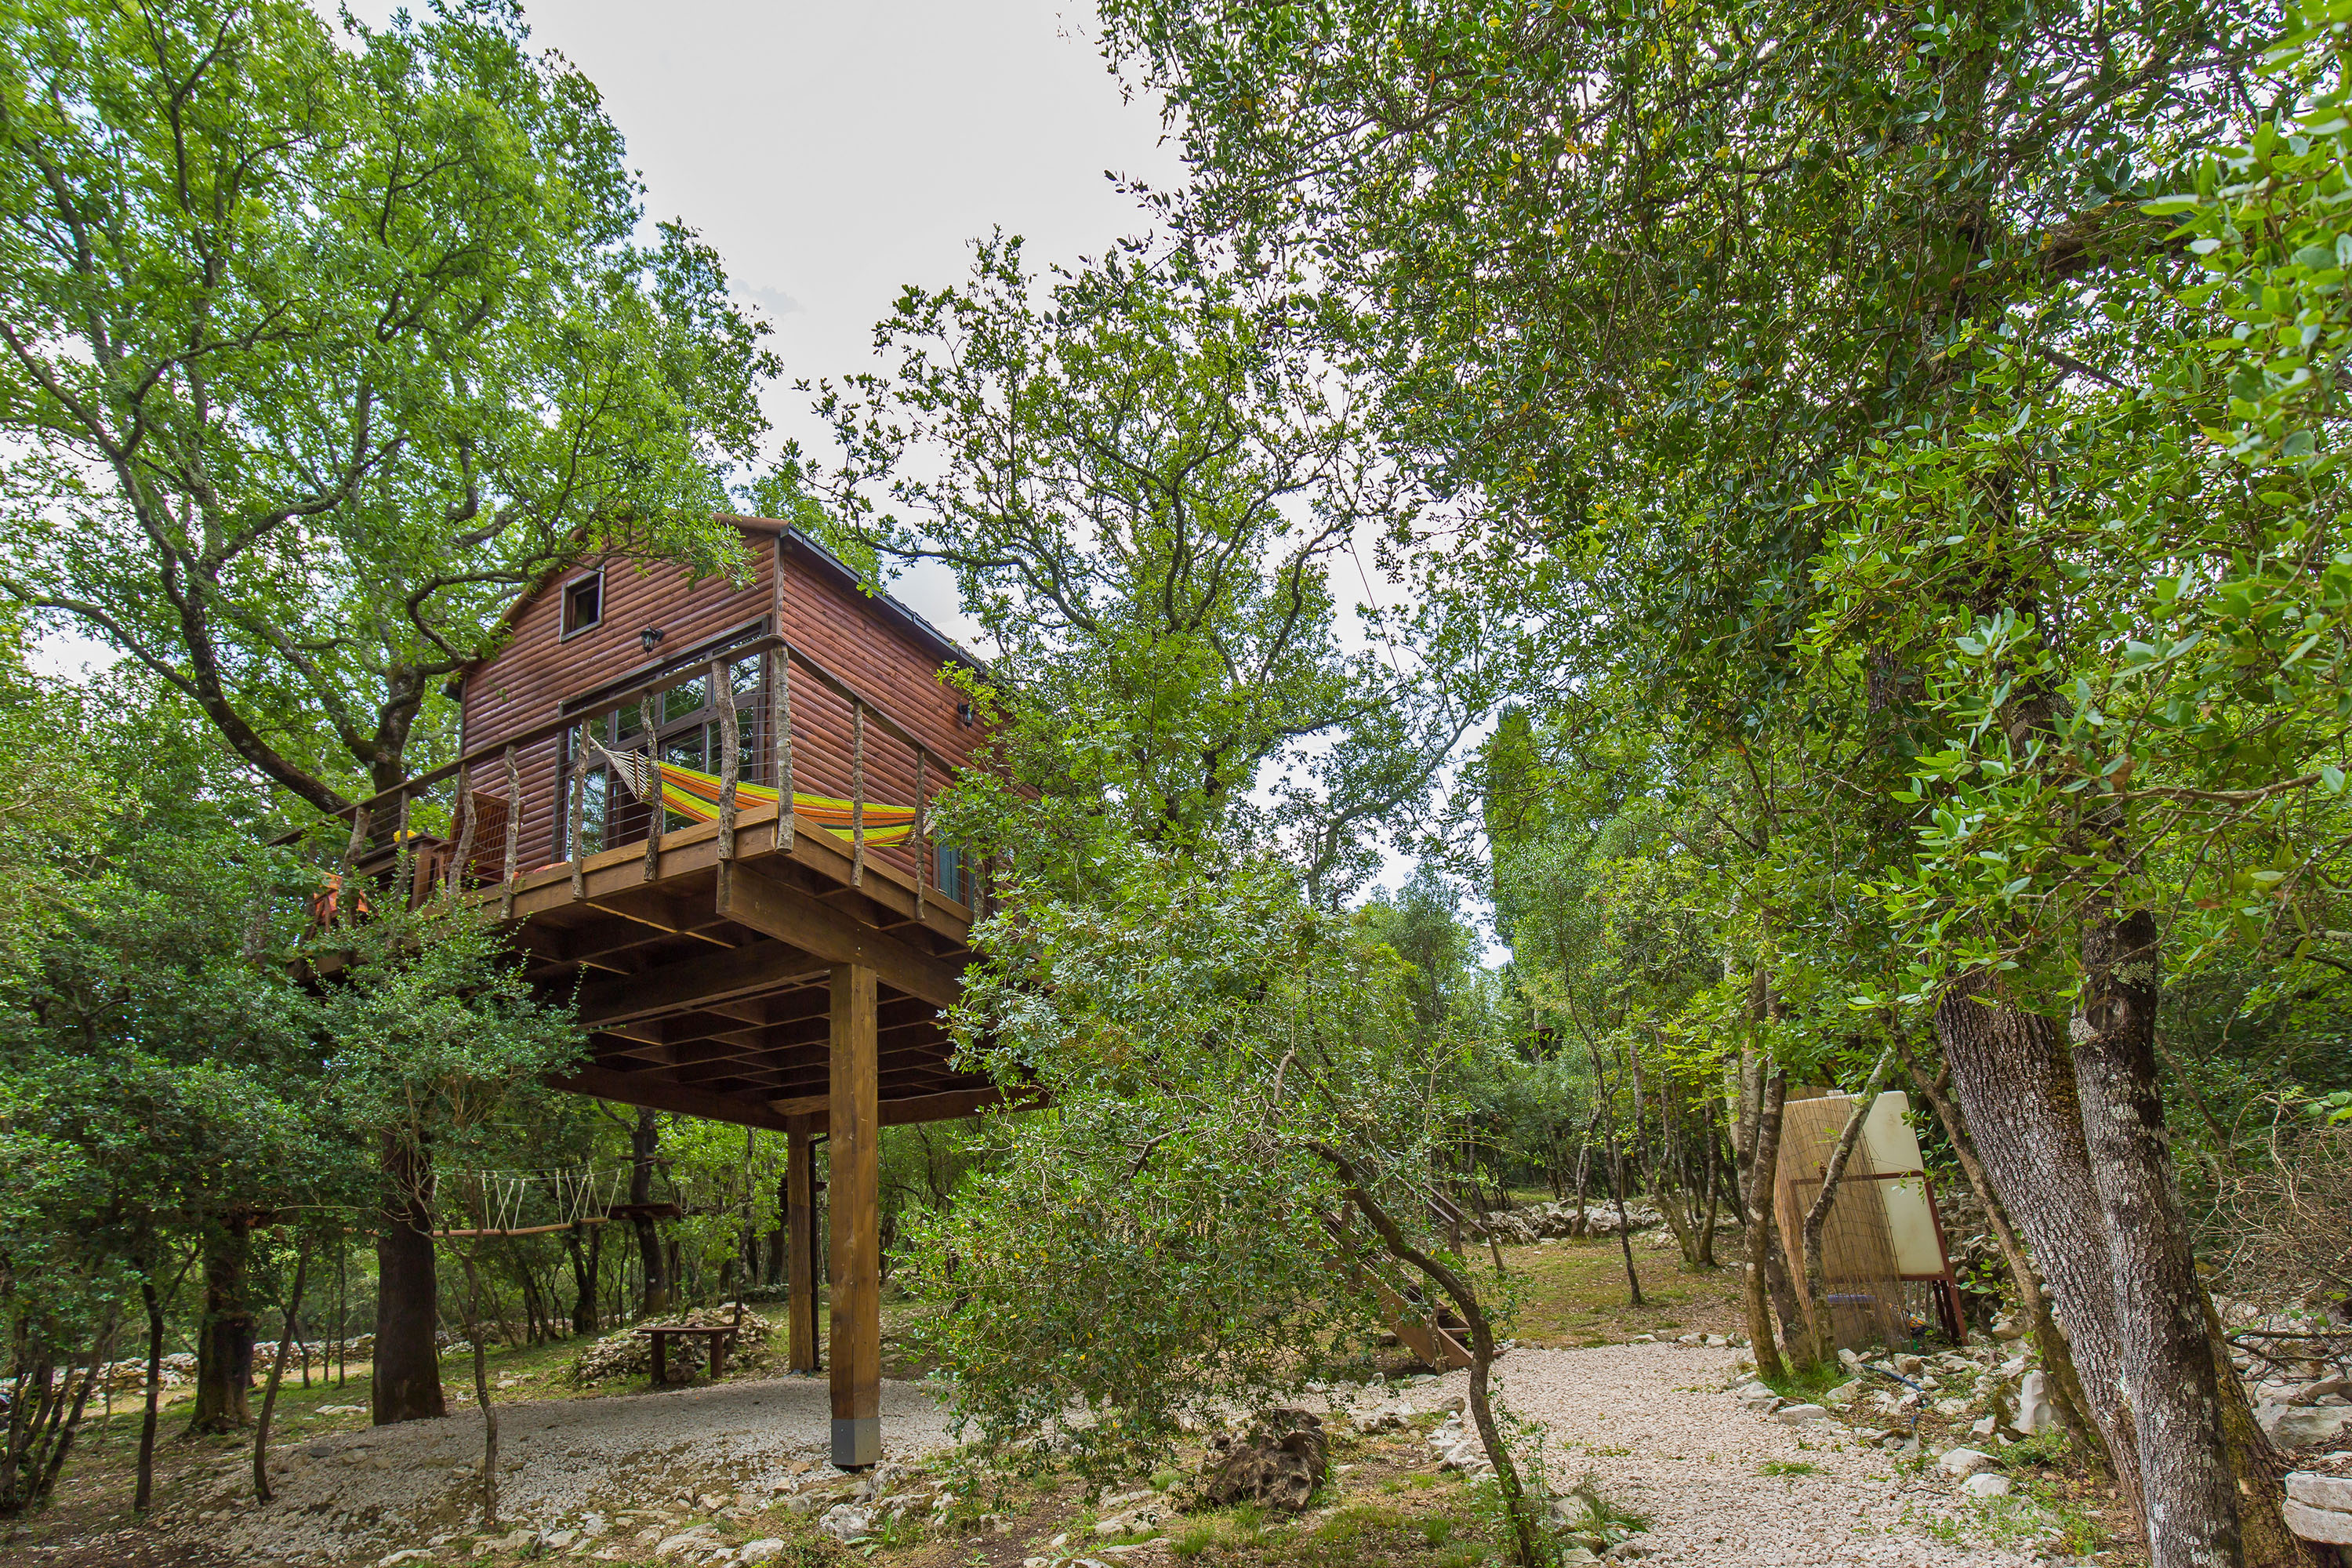 Treehouse Pictures Tree House Rental Near Dubrovnik Croatia